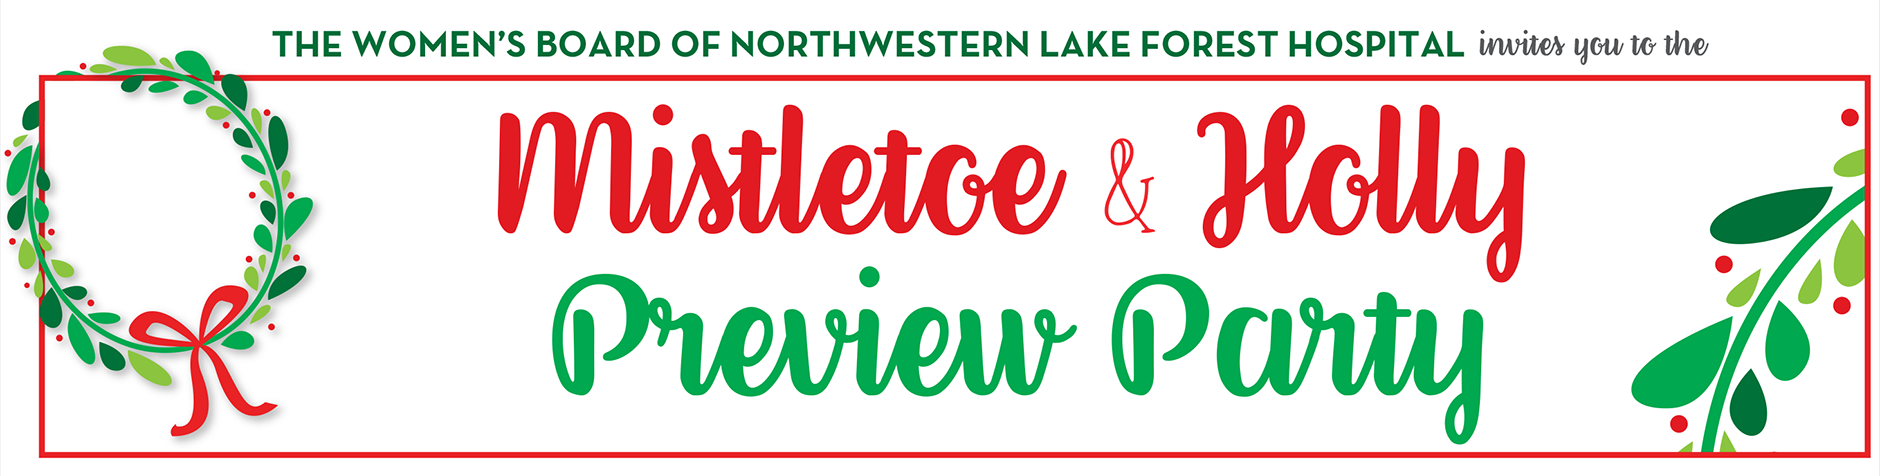 Women's Board of Northwestern Lake Forest Hospital Mistletoe & Holly Preview Party